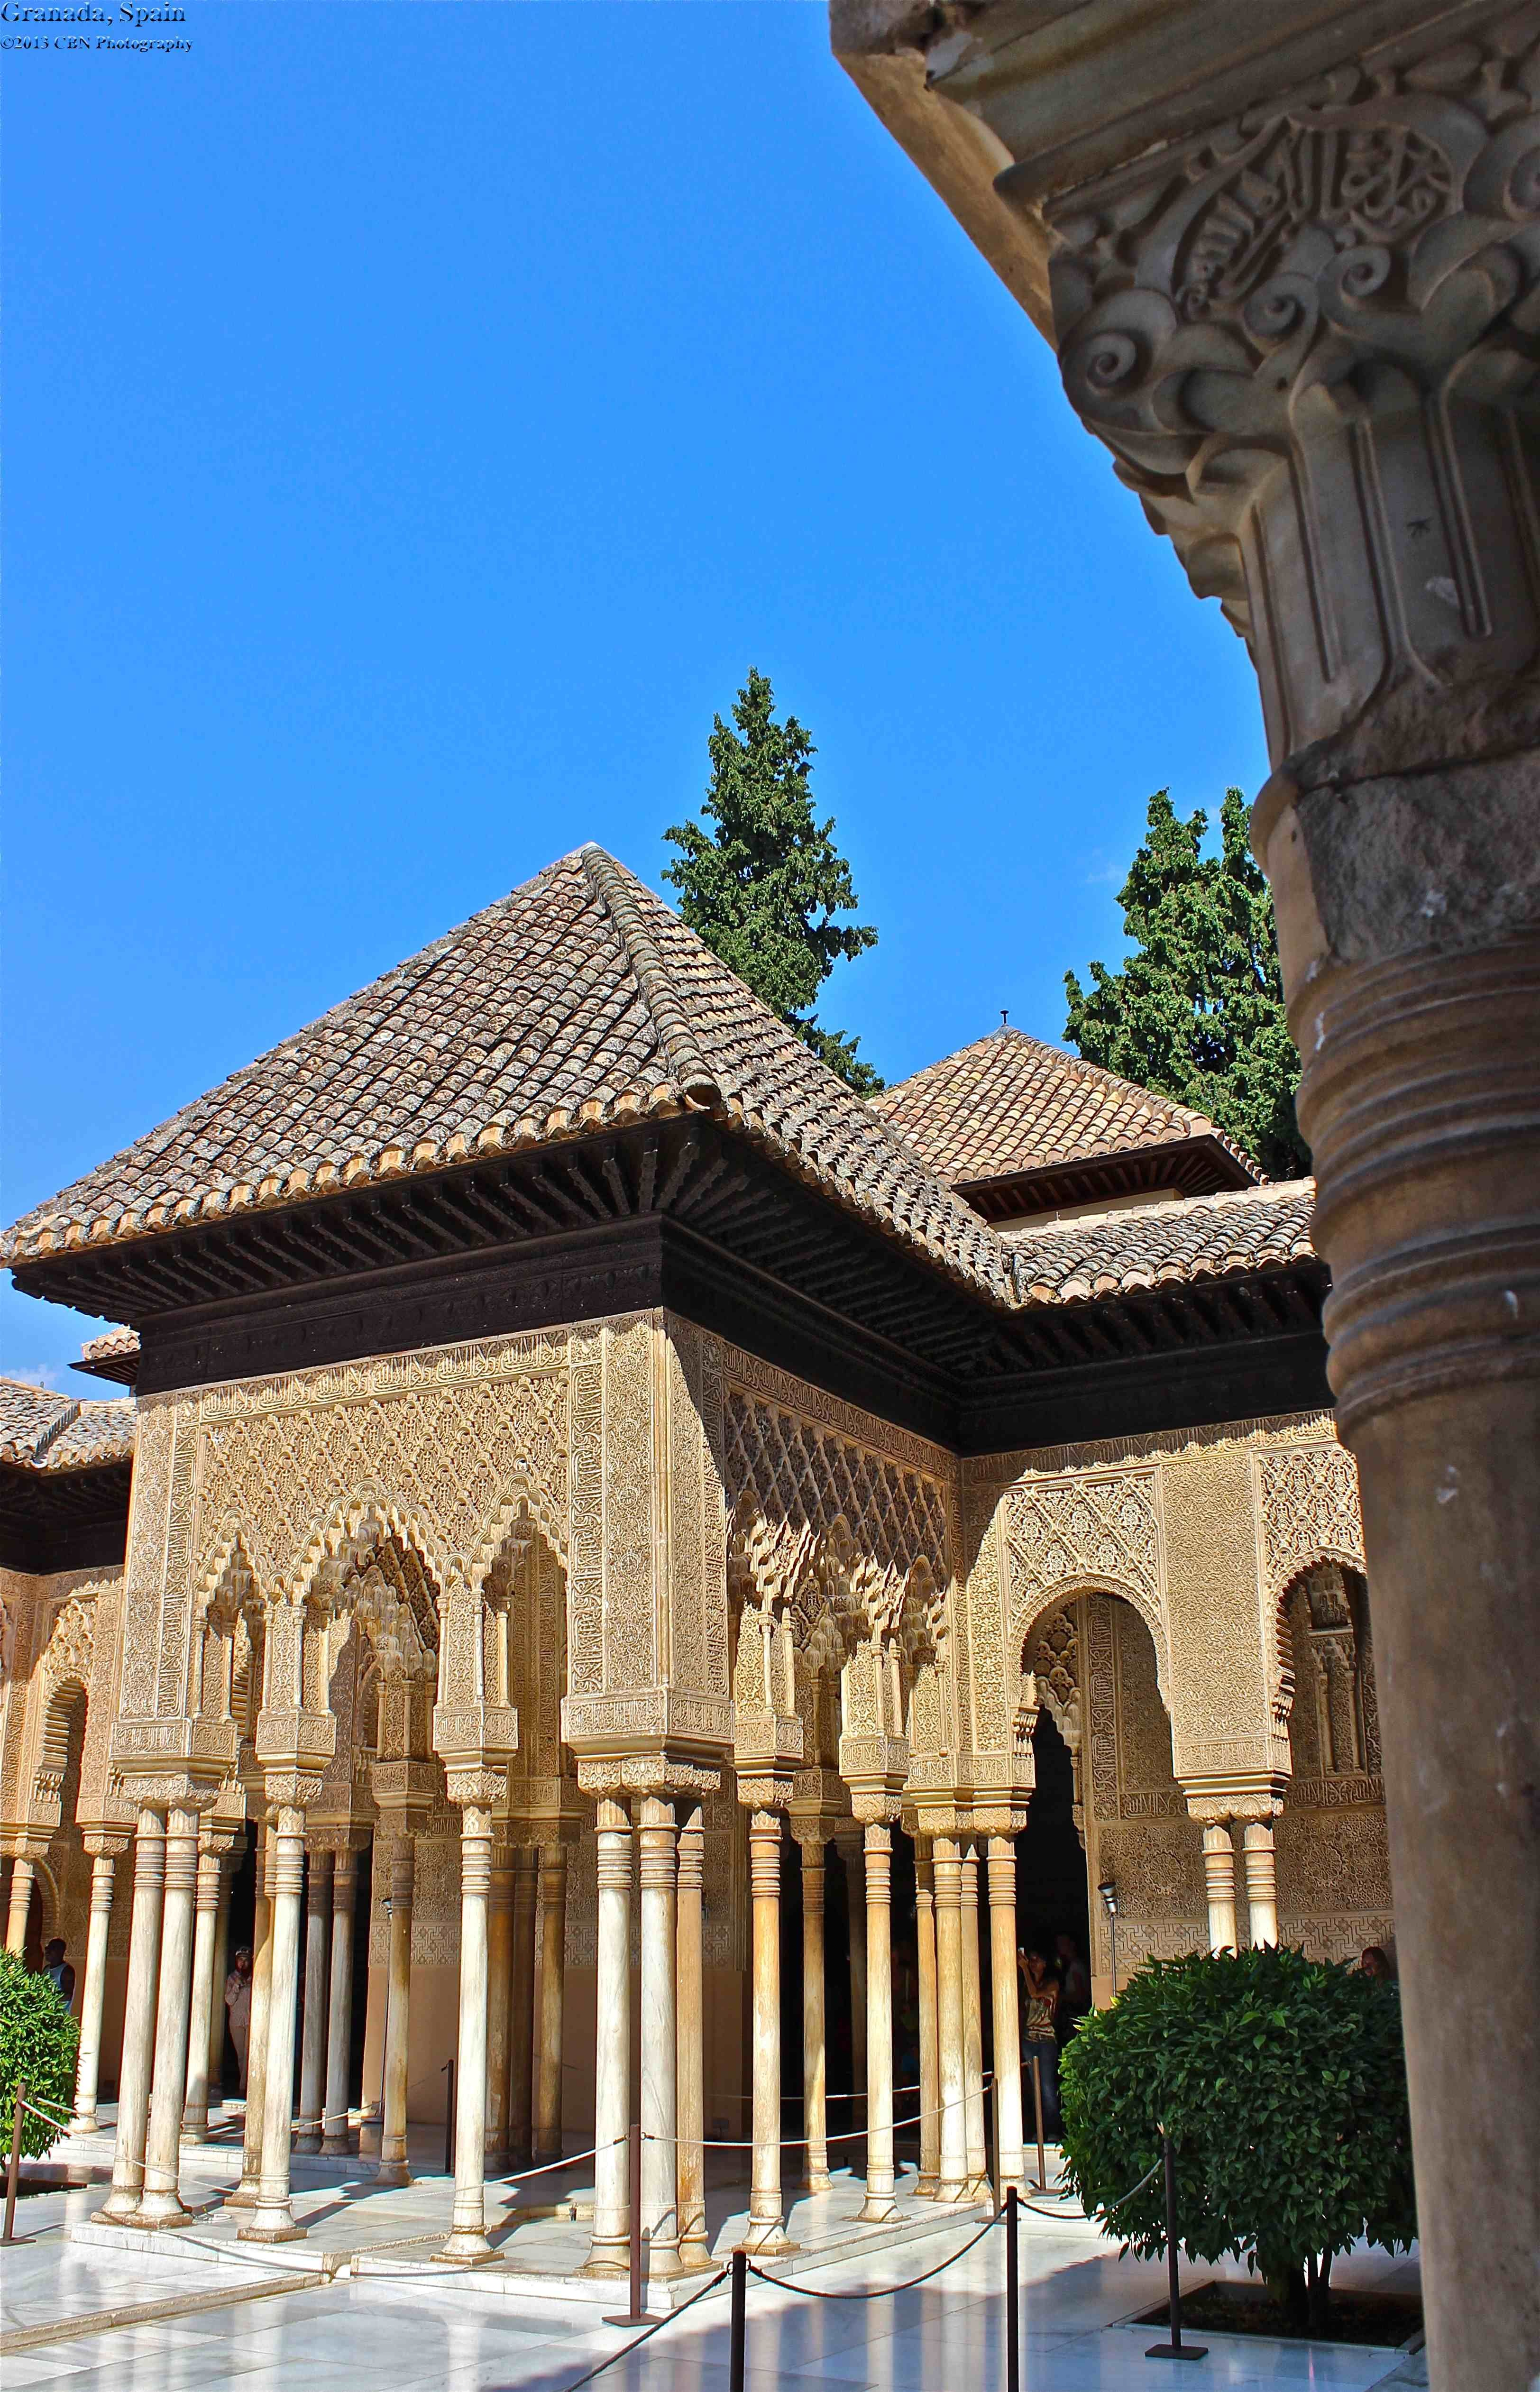 Lions Palace, The Alhambra, Granada, Spain